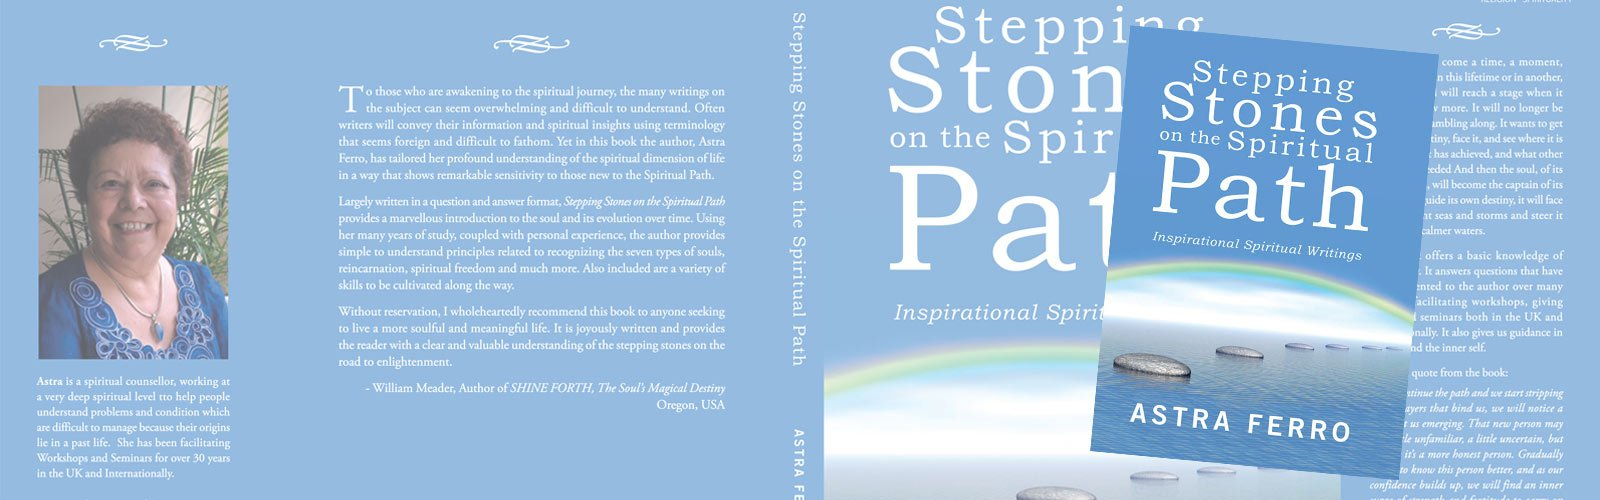 Buy Stepping Stones on the Spiritual Path, new book by Astra Ferro